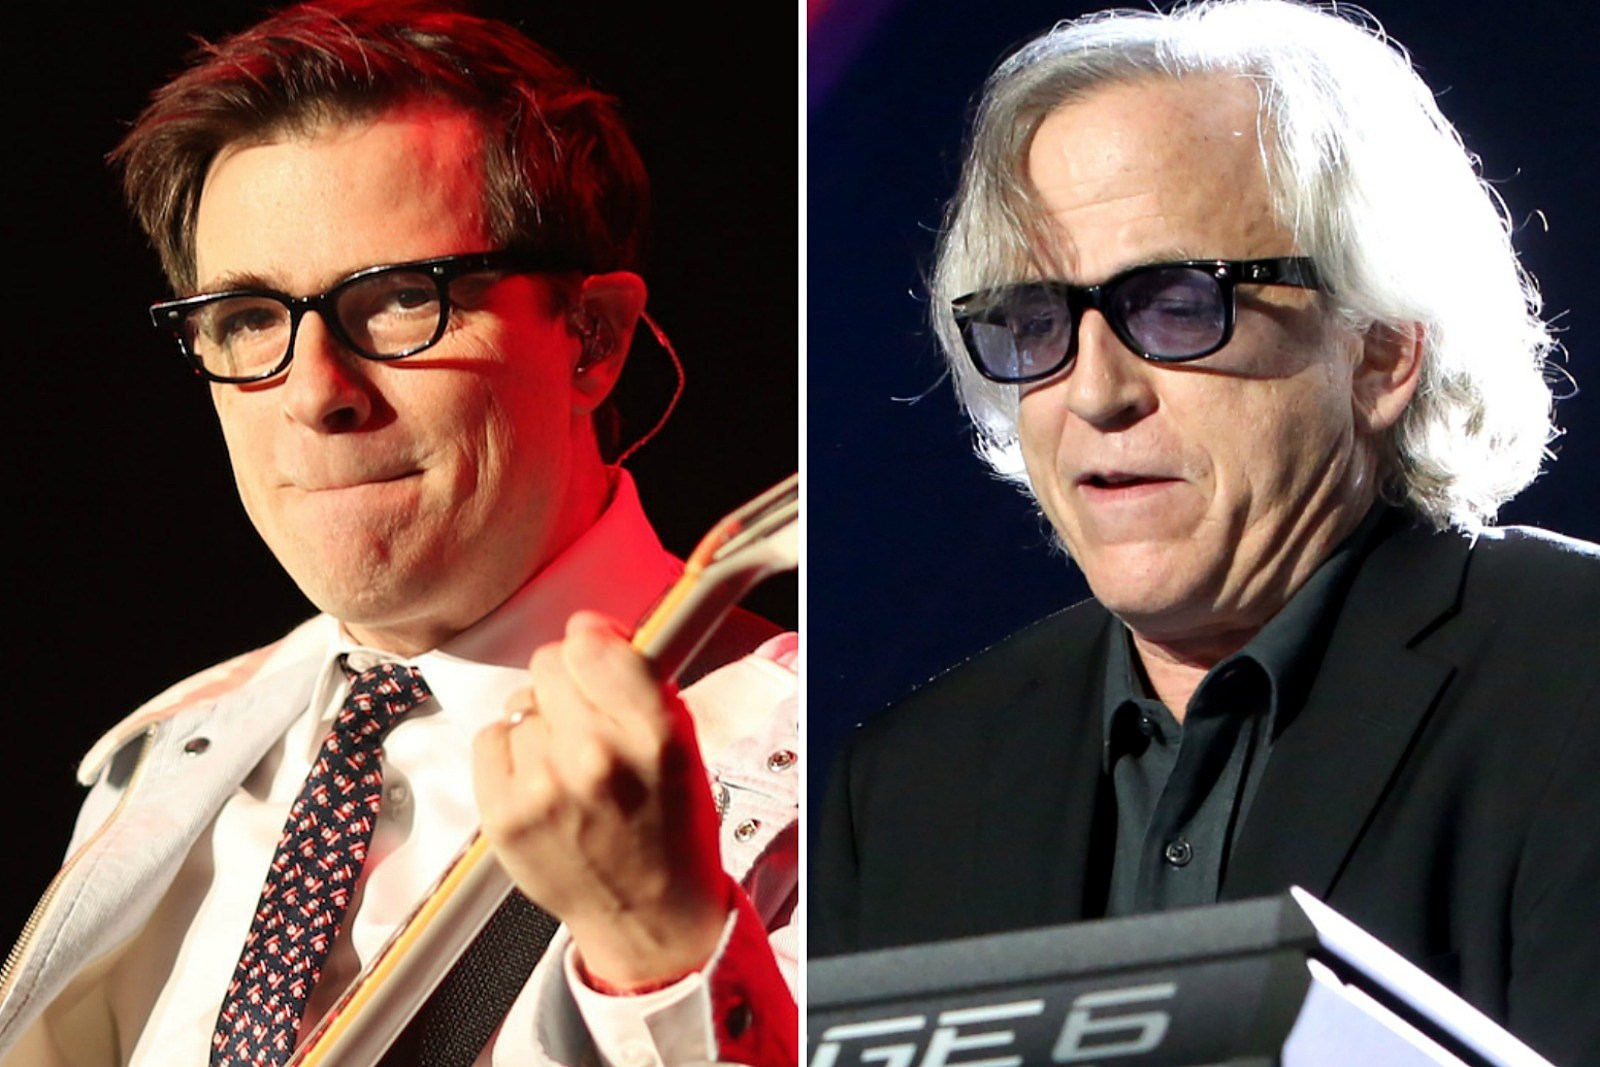 Toto\'s Steve Porcaro Joins Weezer on \'Jimmy Kimmel\' for \'Africa\'